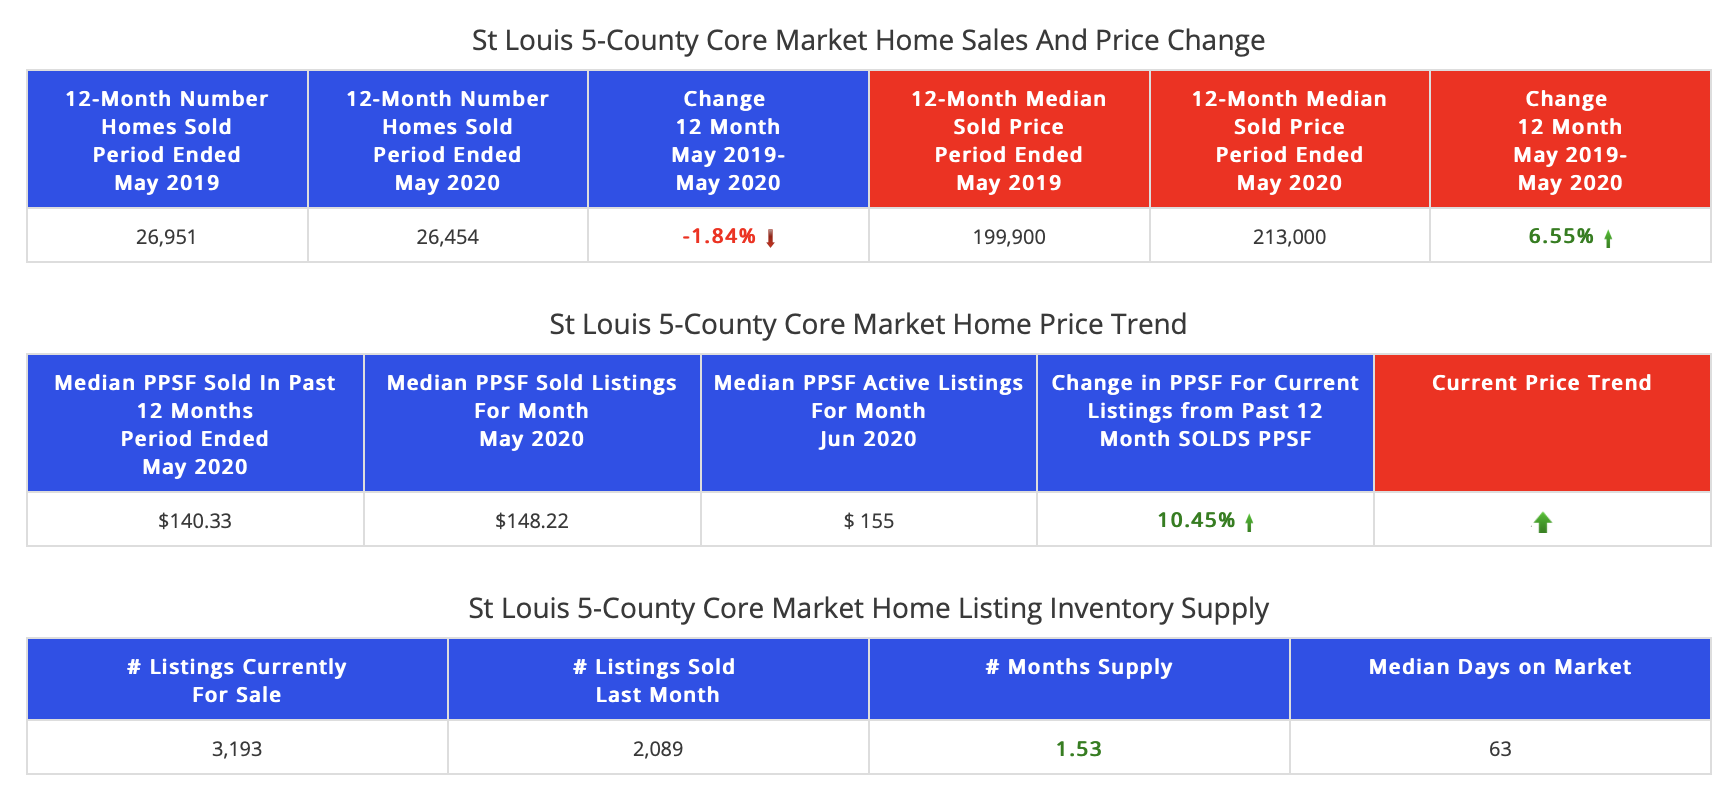 St Louis 5-County Core Market Home Sales and Prices  Past 12 Months vs Year Ago